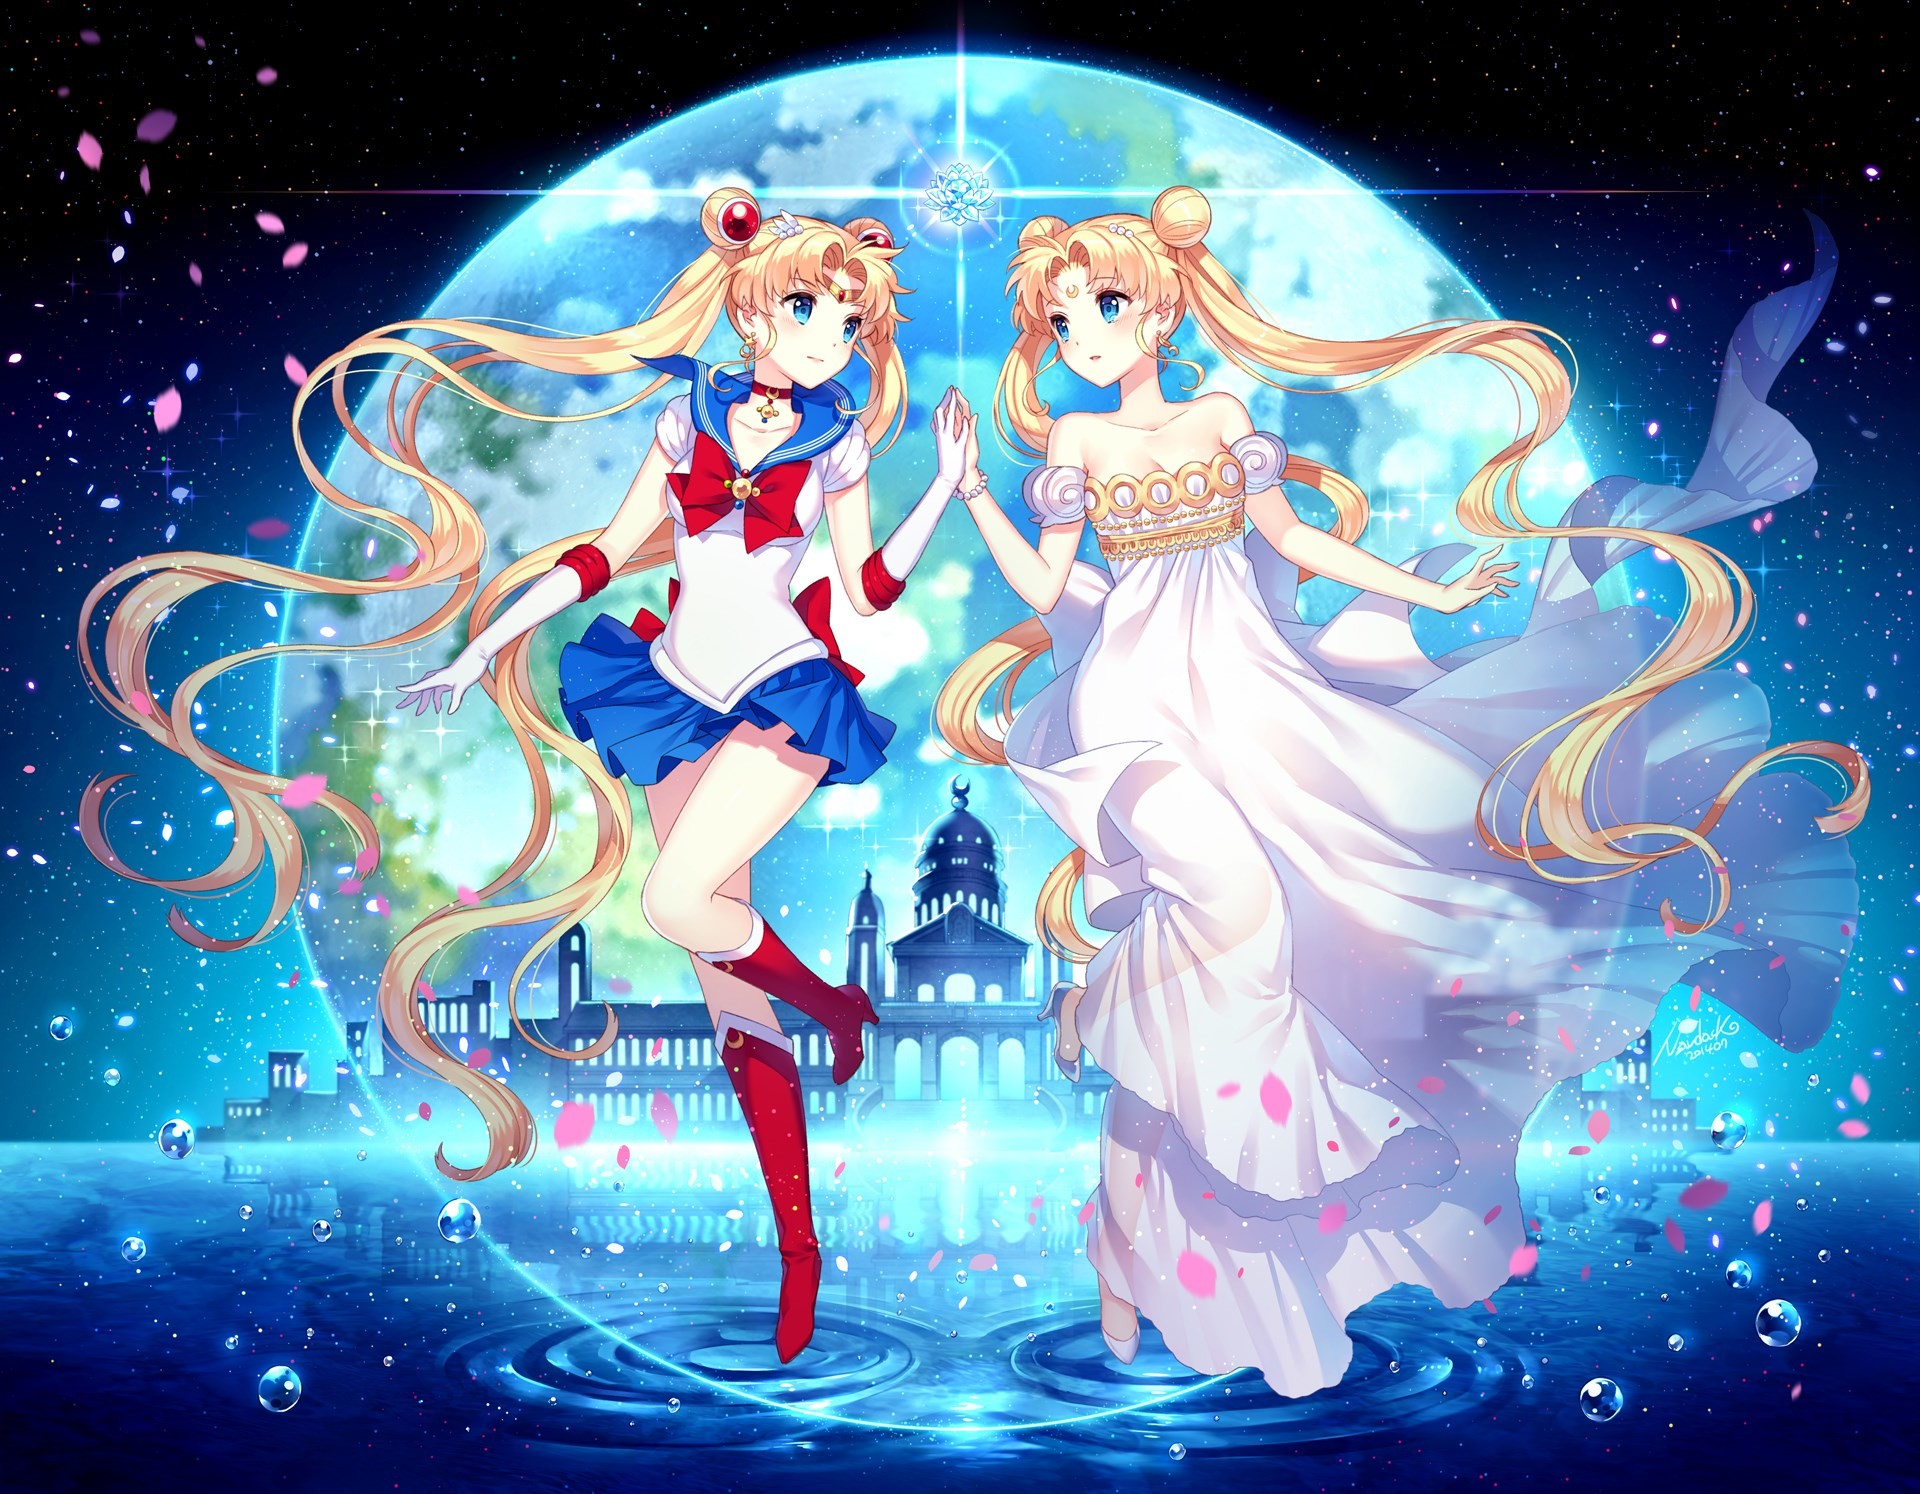 #1495123, sailor moon category – Free Awesome sailor moon wallpaper